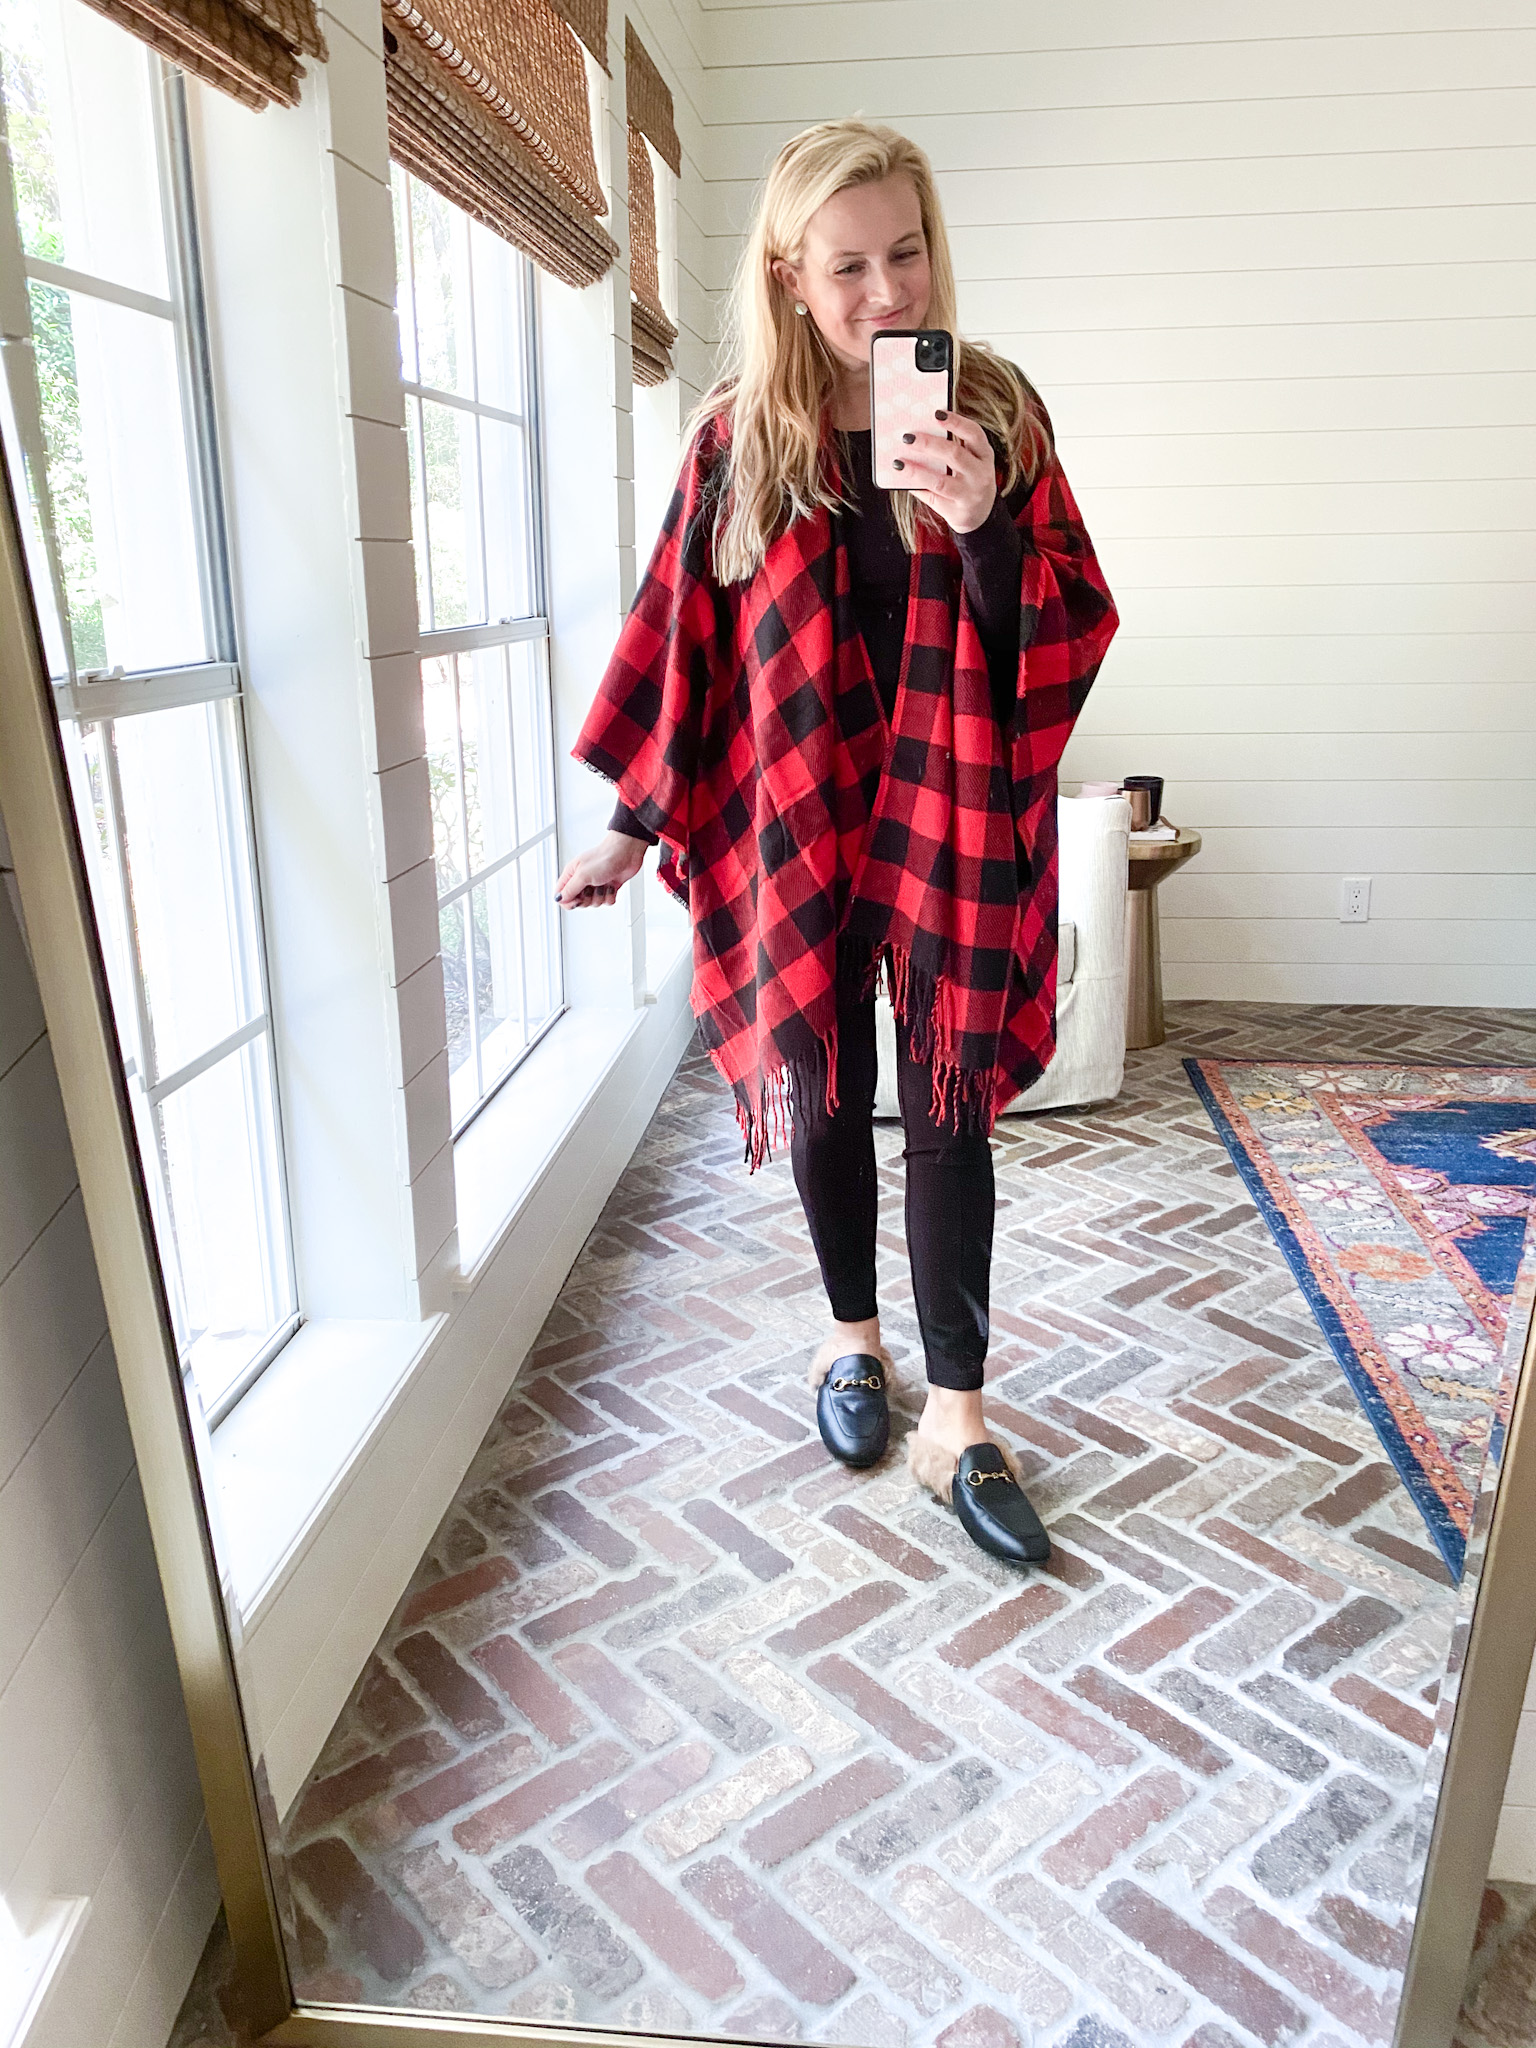 Prime Day by popular Houston fashion blog, Fancy Ashley: image of a woman wearing a Amazon black and red buffalo plaid poncho, black leggings, and black mules.